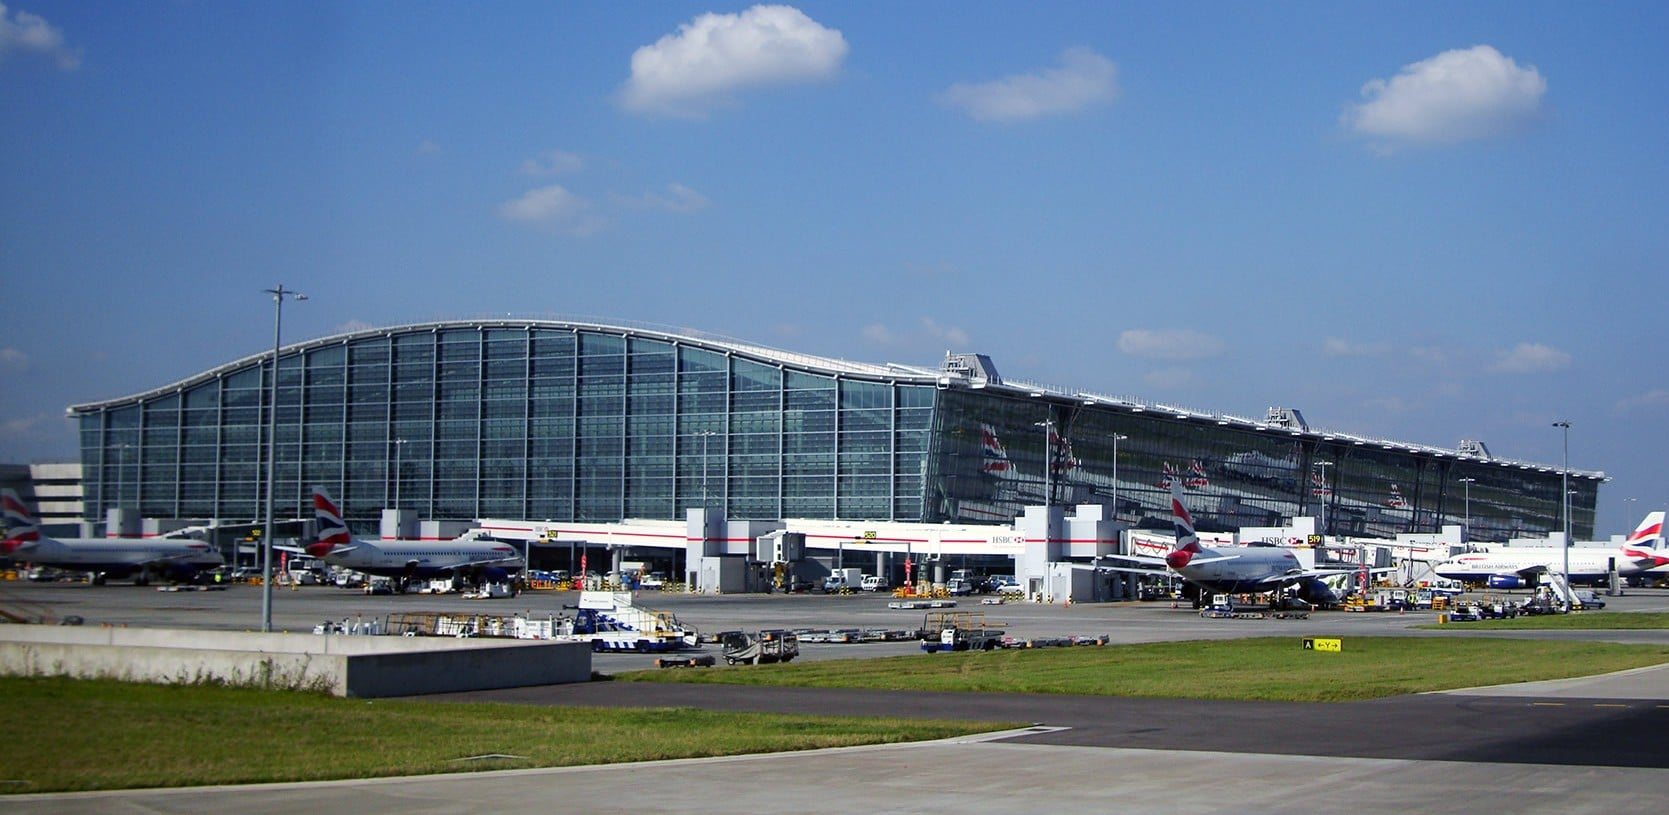 Heathrow Airport is the busiest airport in the United Kingdom